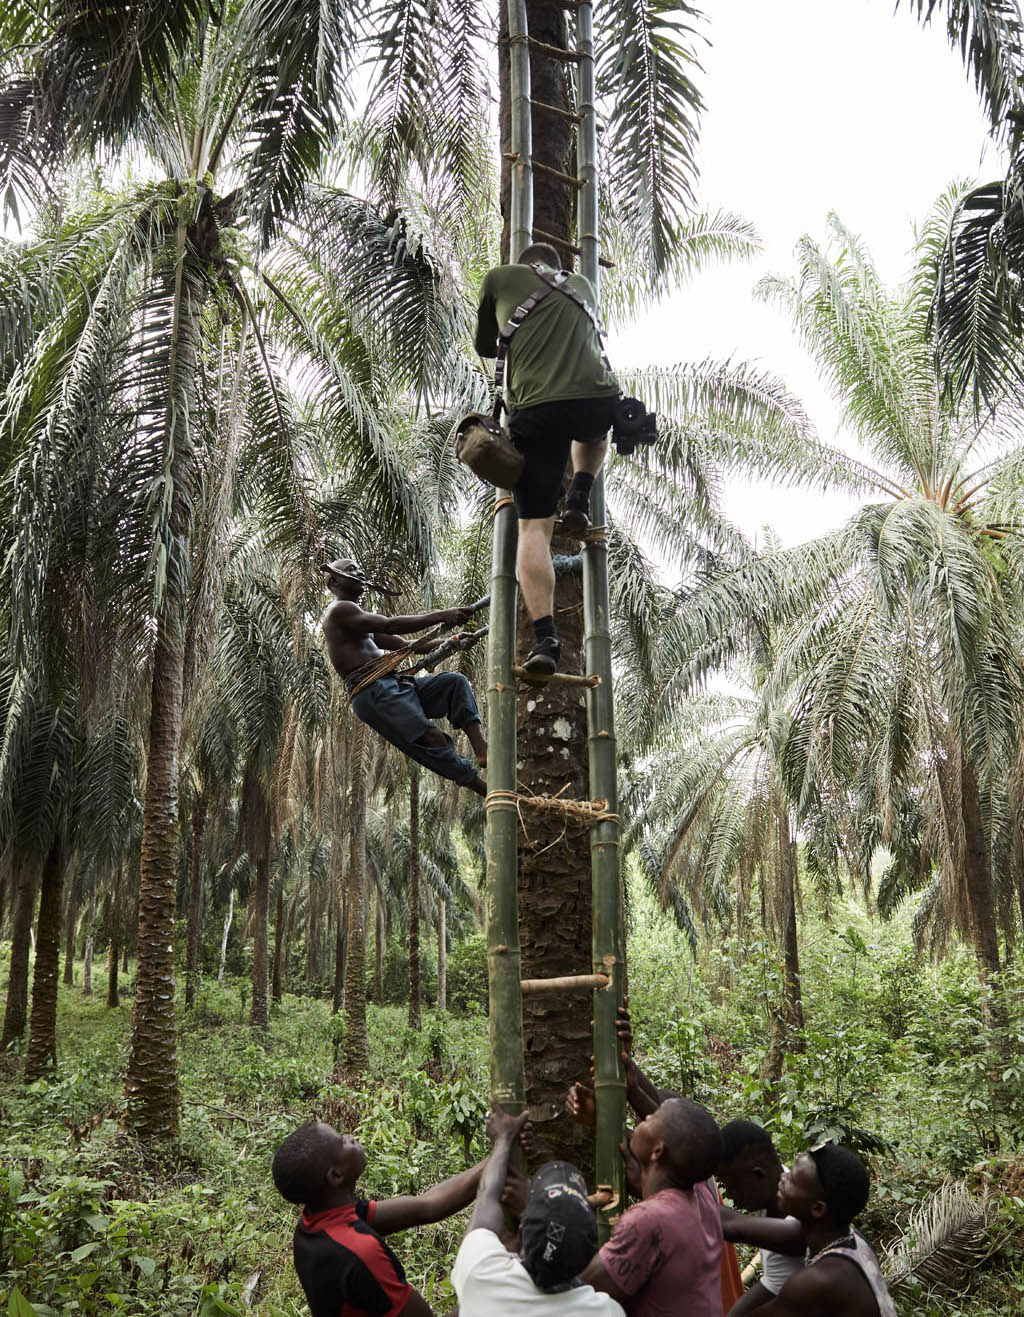 Joey Lawrence photographing Momoh Babaga, 22, as he climbs trees to collect palm kernels, Tombohuaun, Sierra Leone, May 2017.